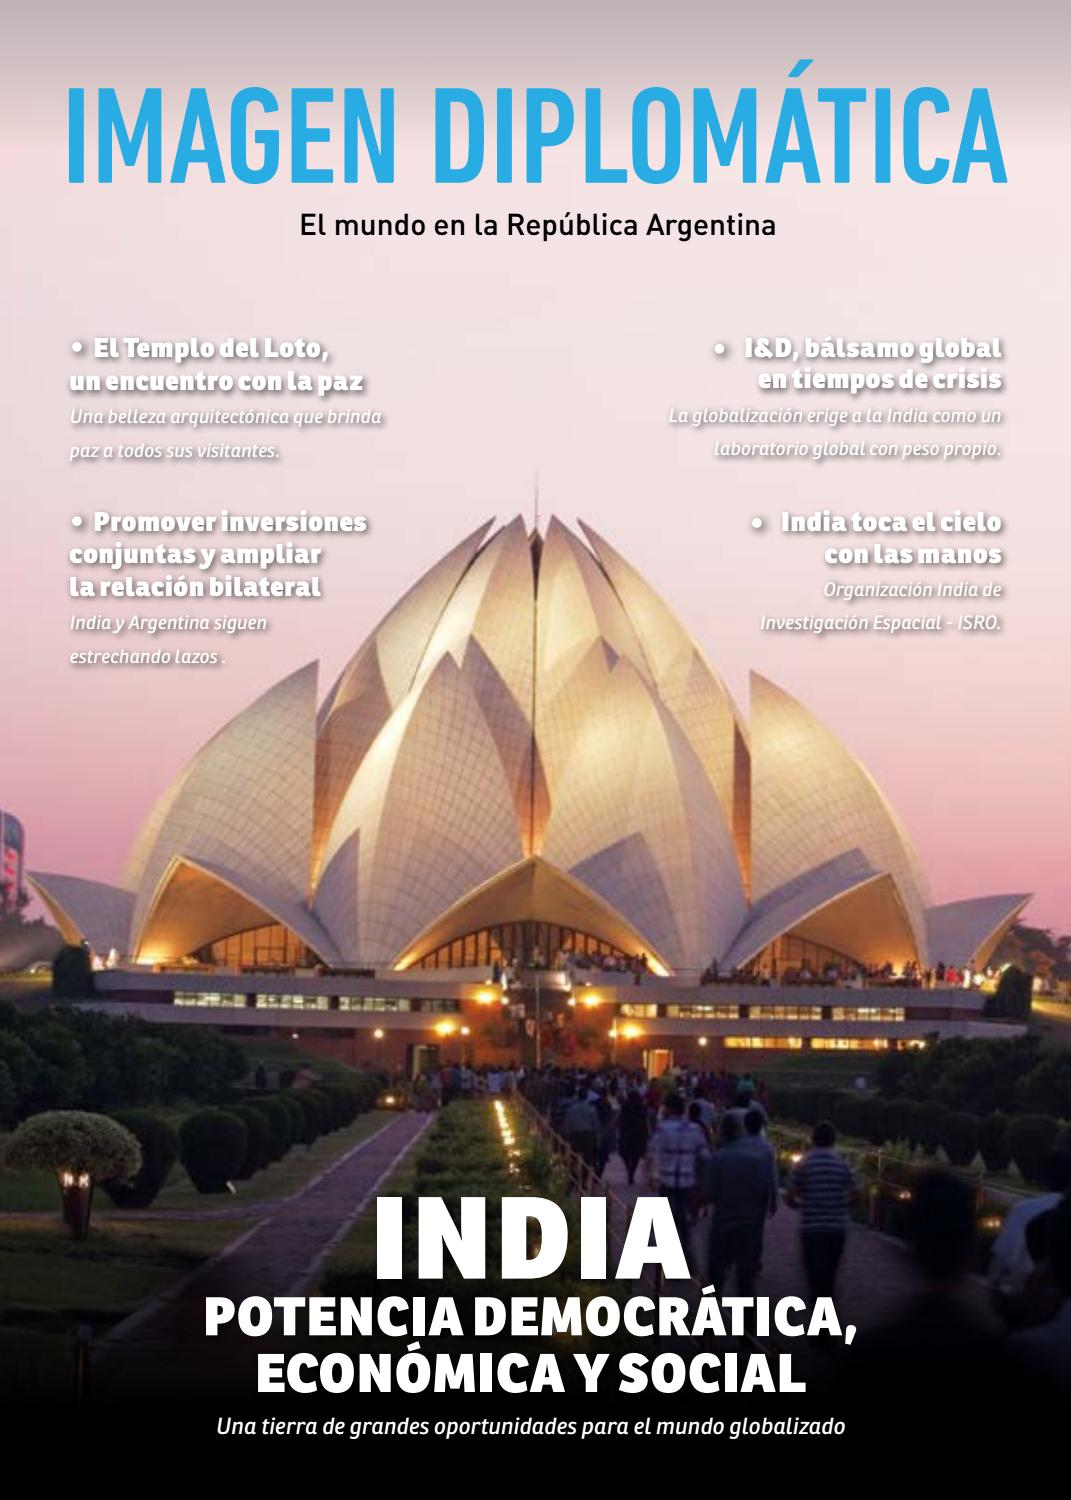 Revista india by IMAGEN DIPLOMATICA - issuu